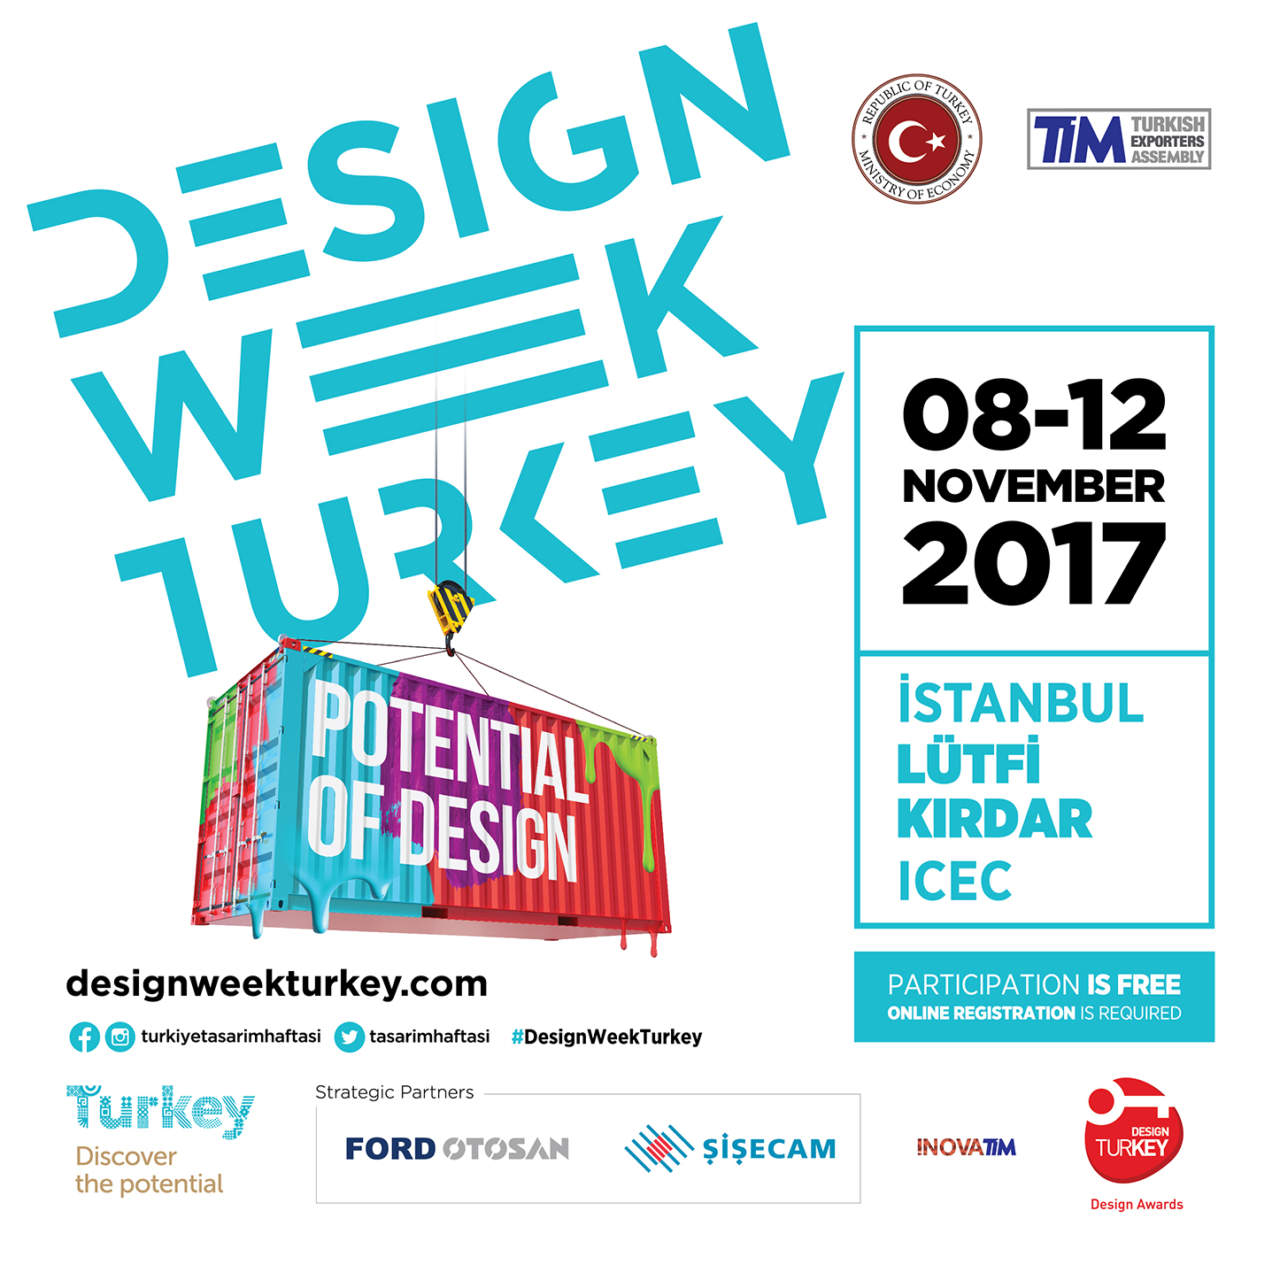 Design Week Turkey 2017 - Potential Design